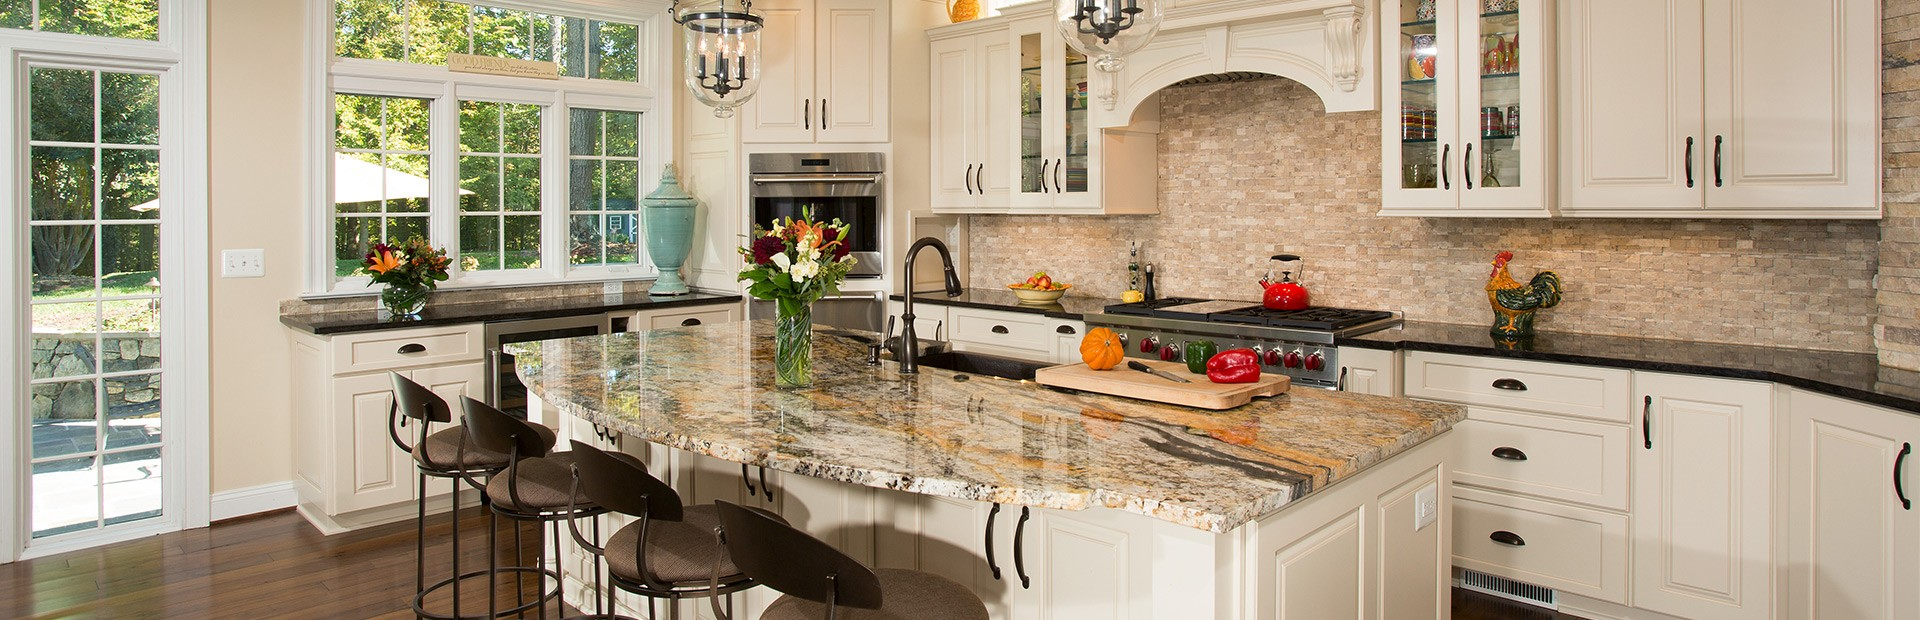 Kitchen Remodeling Contractors Northern VA Sun Design Remodeling - Kitchen remodel northern virginia